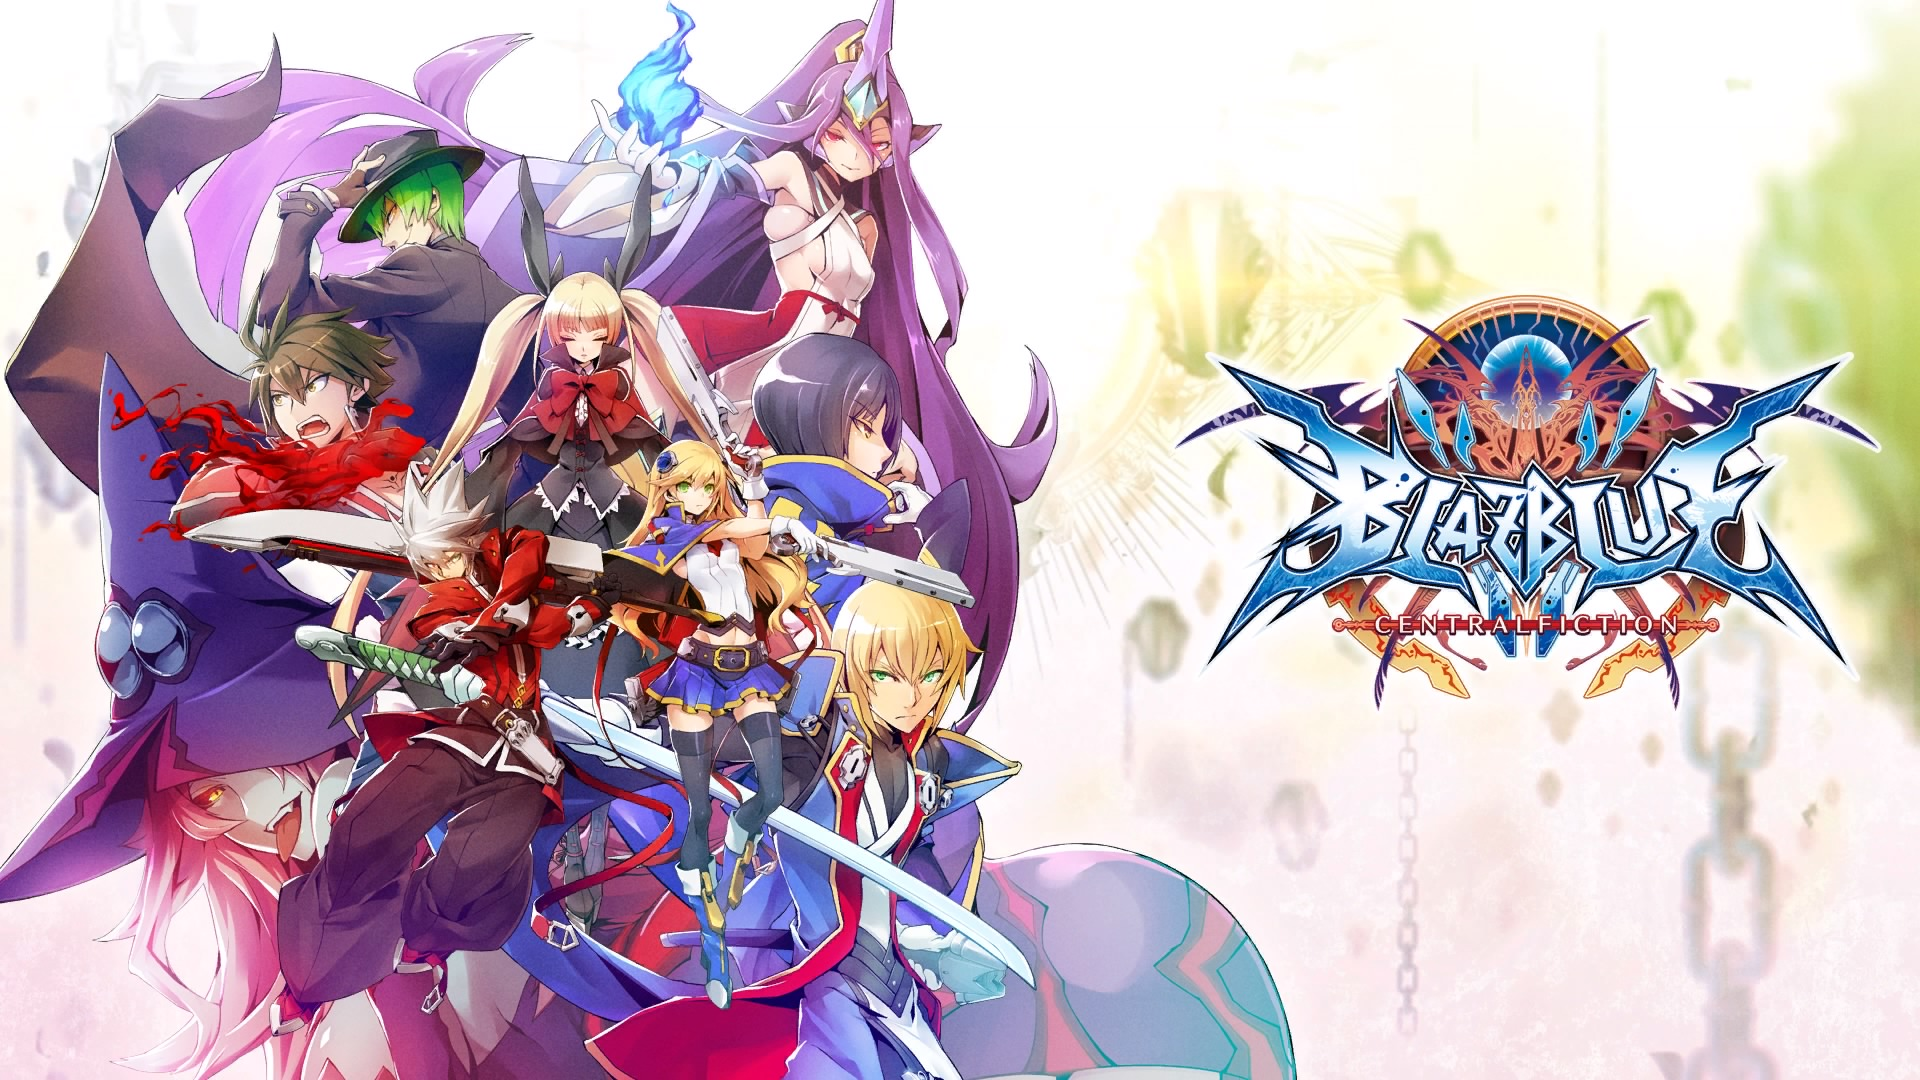 Blazblue Centralfiction Hd Wallpaper Background Image